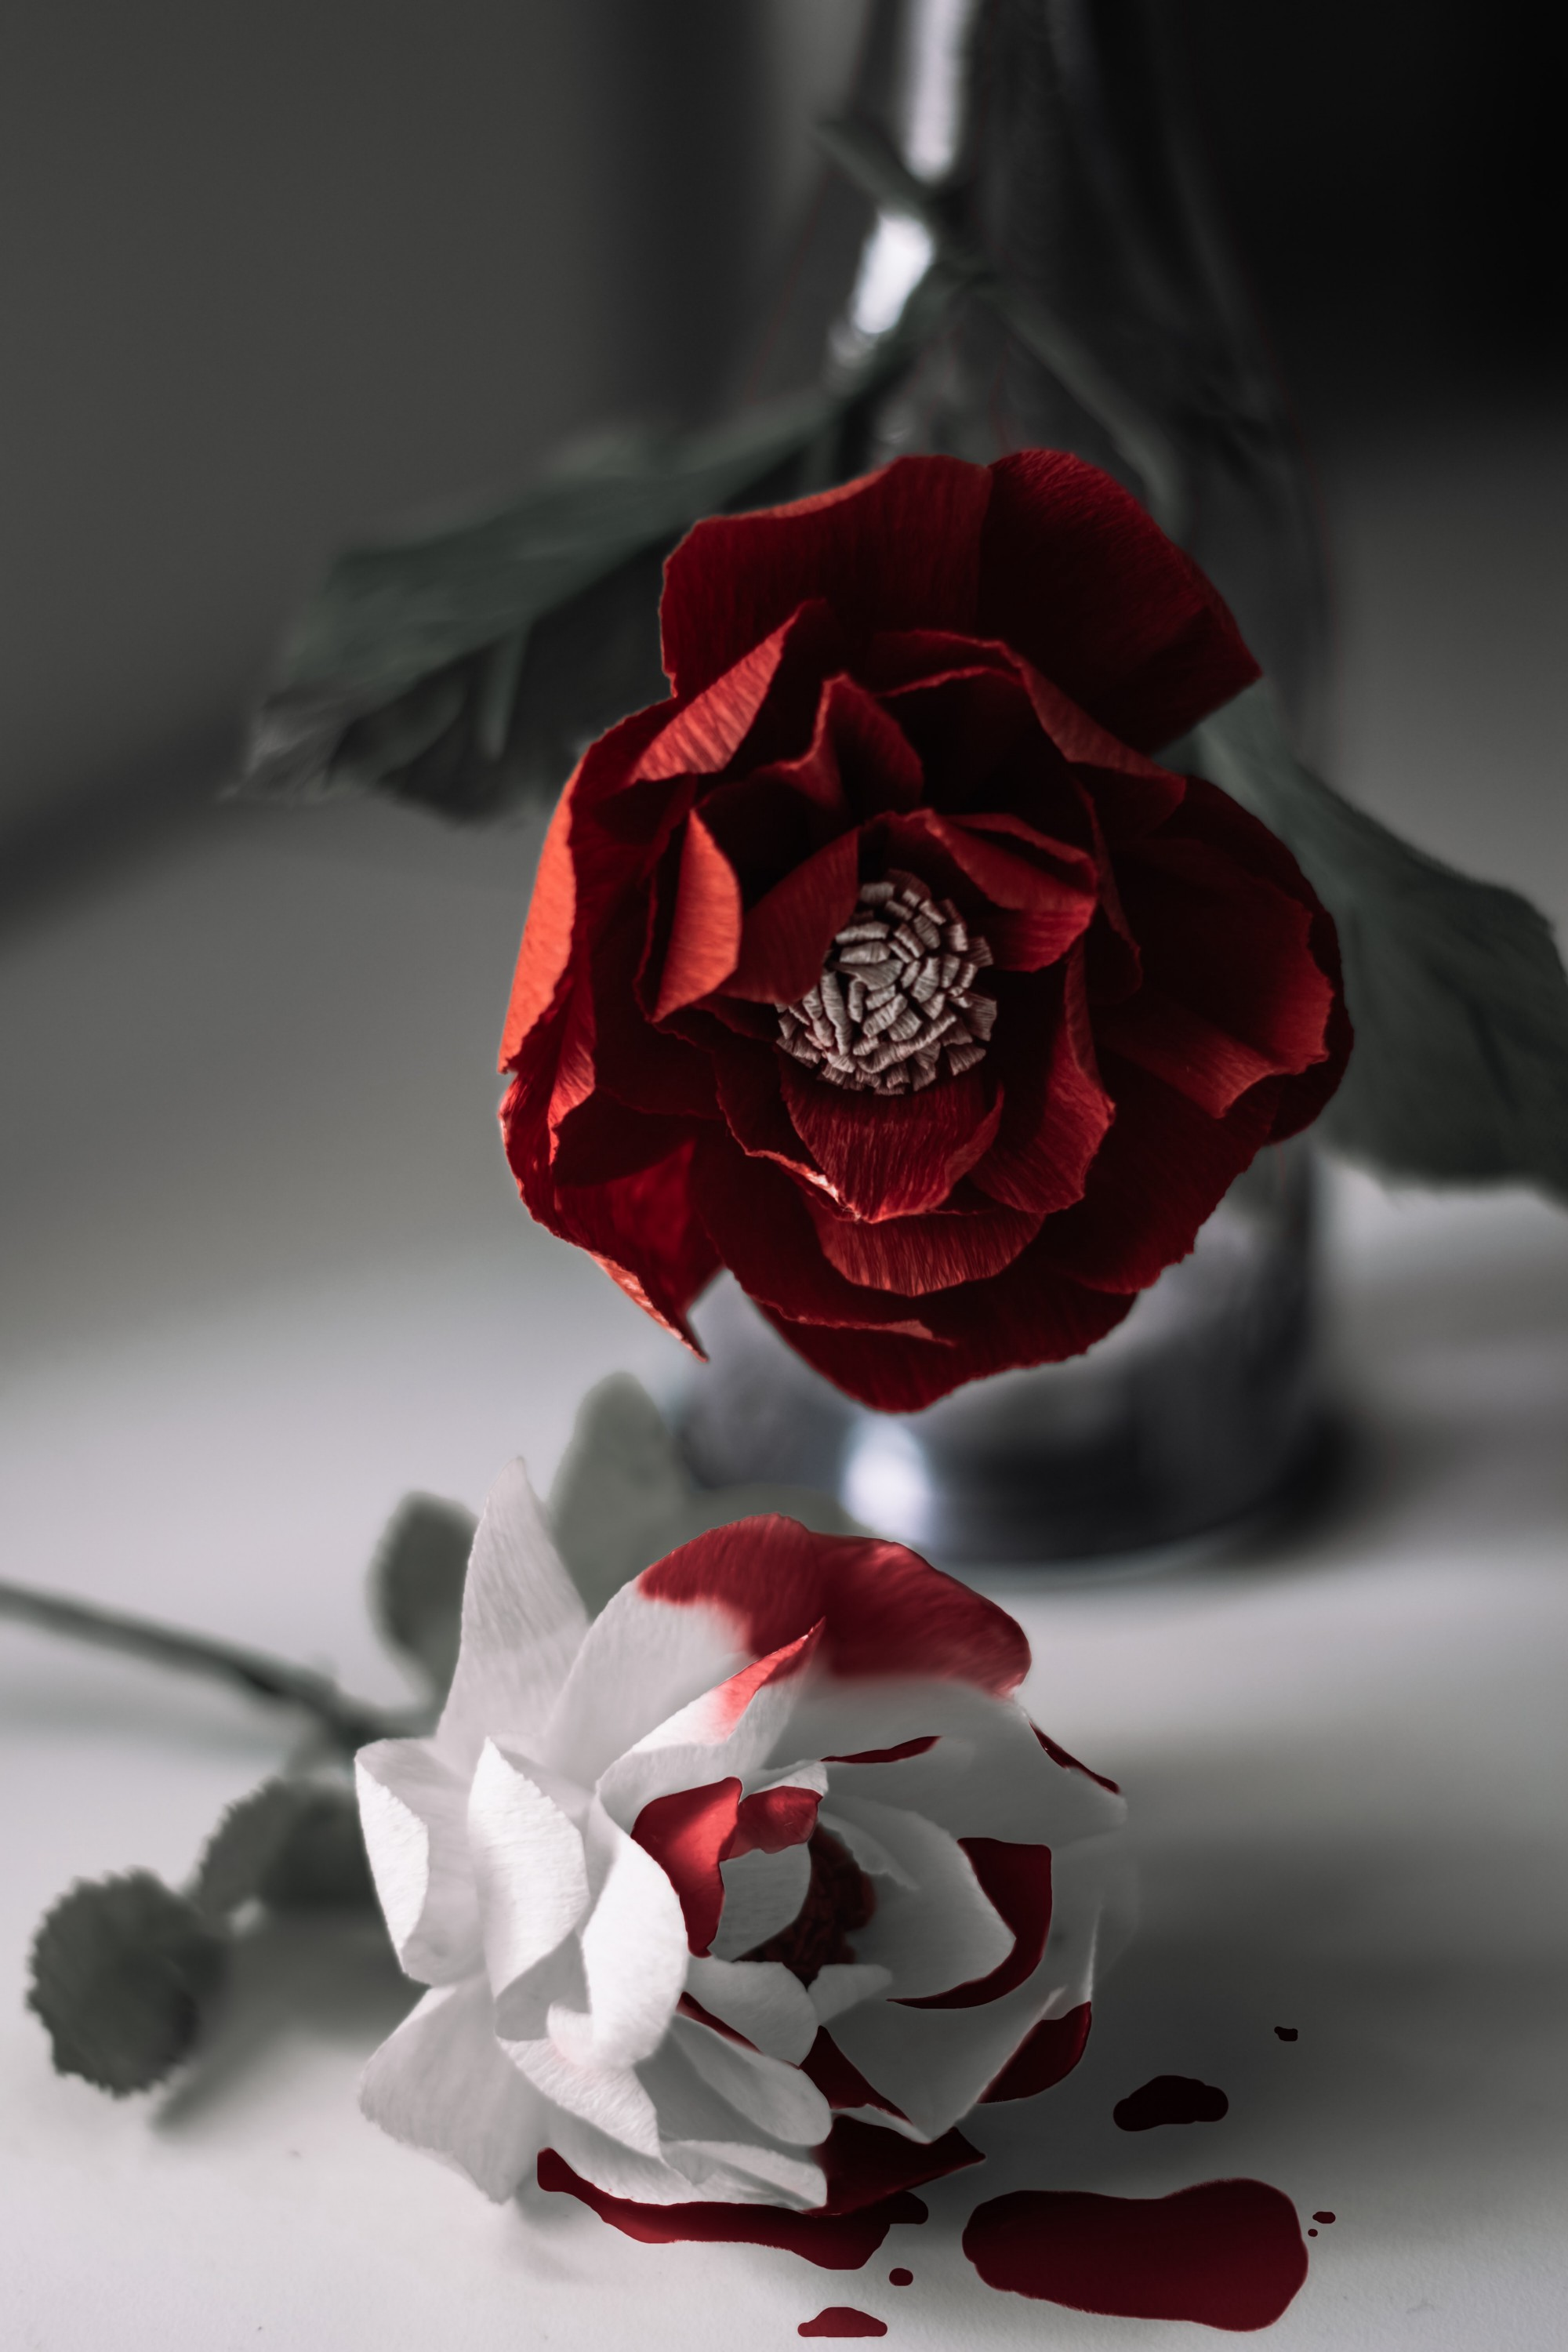 A red rose over a white rose with red stains